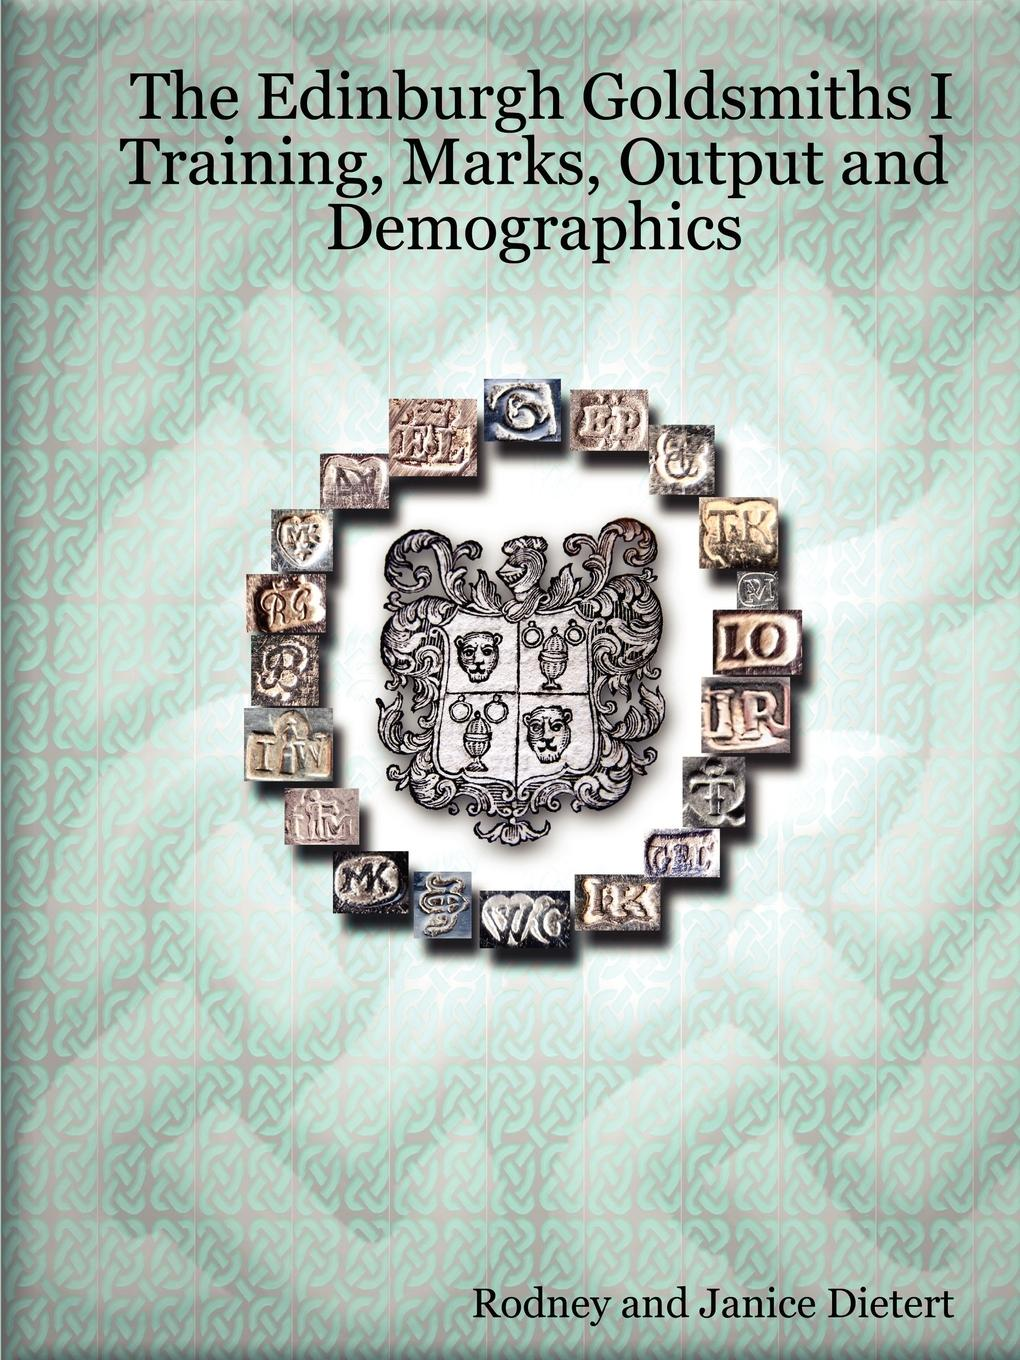 Janice Dietert, Rodney Dietert The Edinburgh Goldsmiths I. Training, Marks, Output and Demographics скульптура в произведениях золотого и серебряного дела the sculpture in the gold and silver craftsmen works набор из 22 открыток